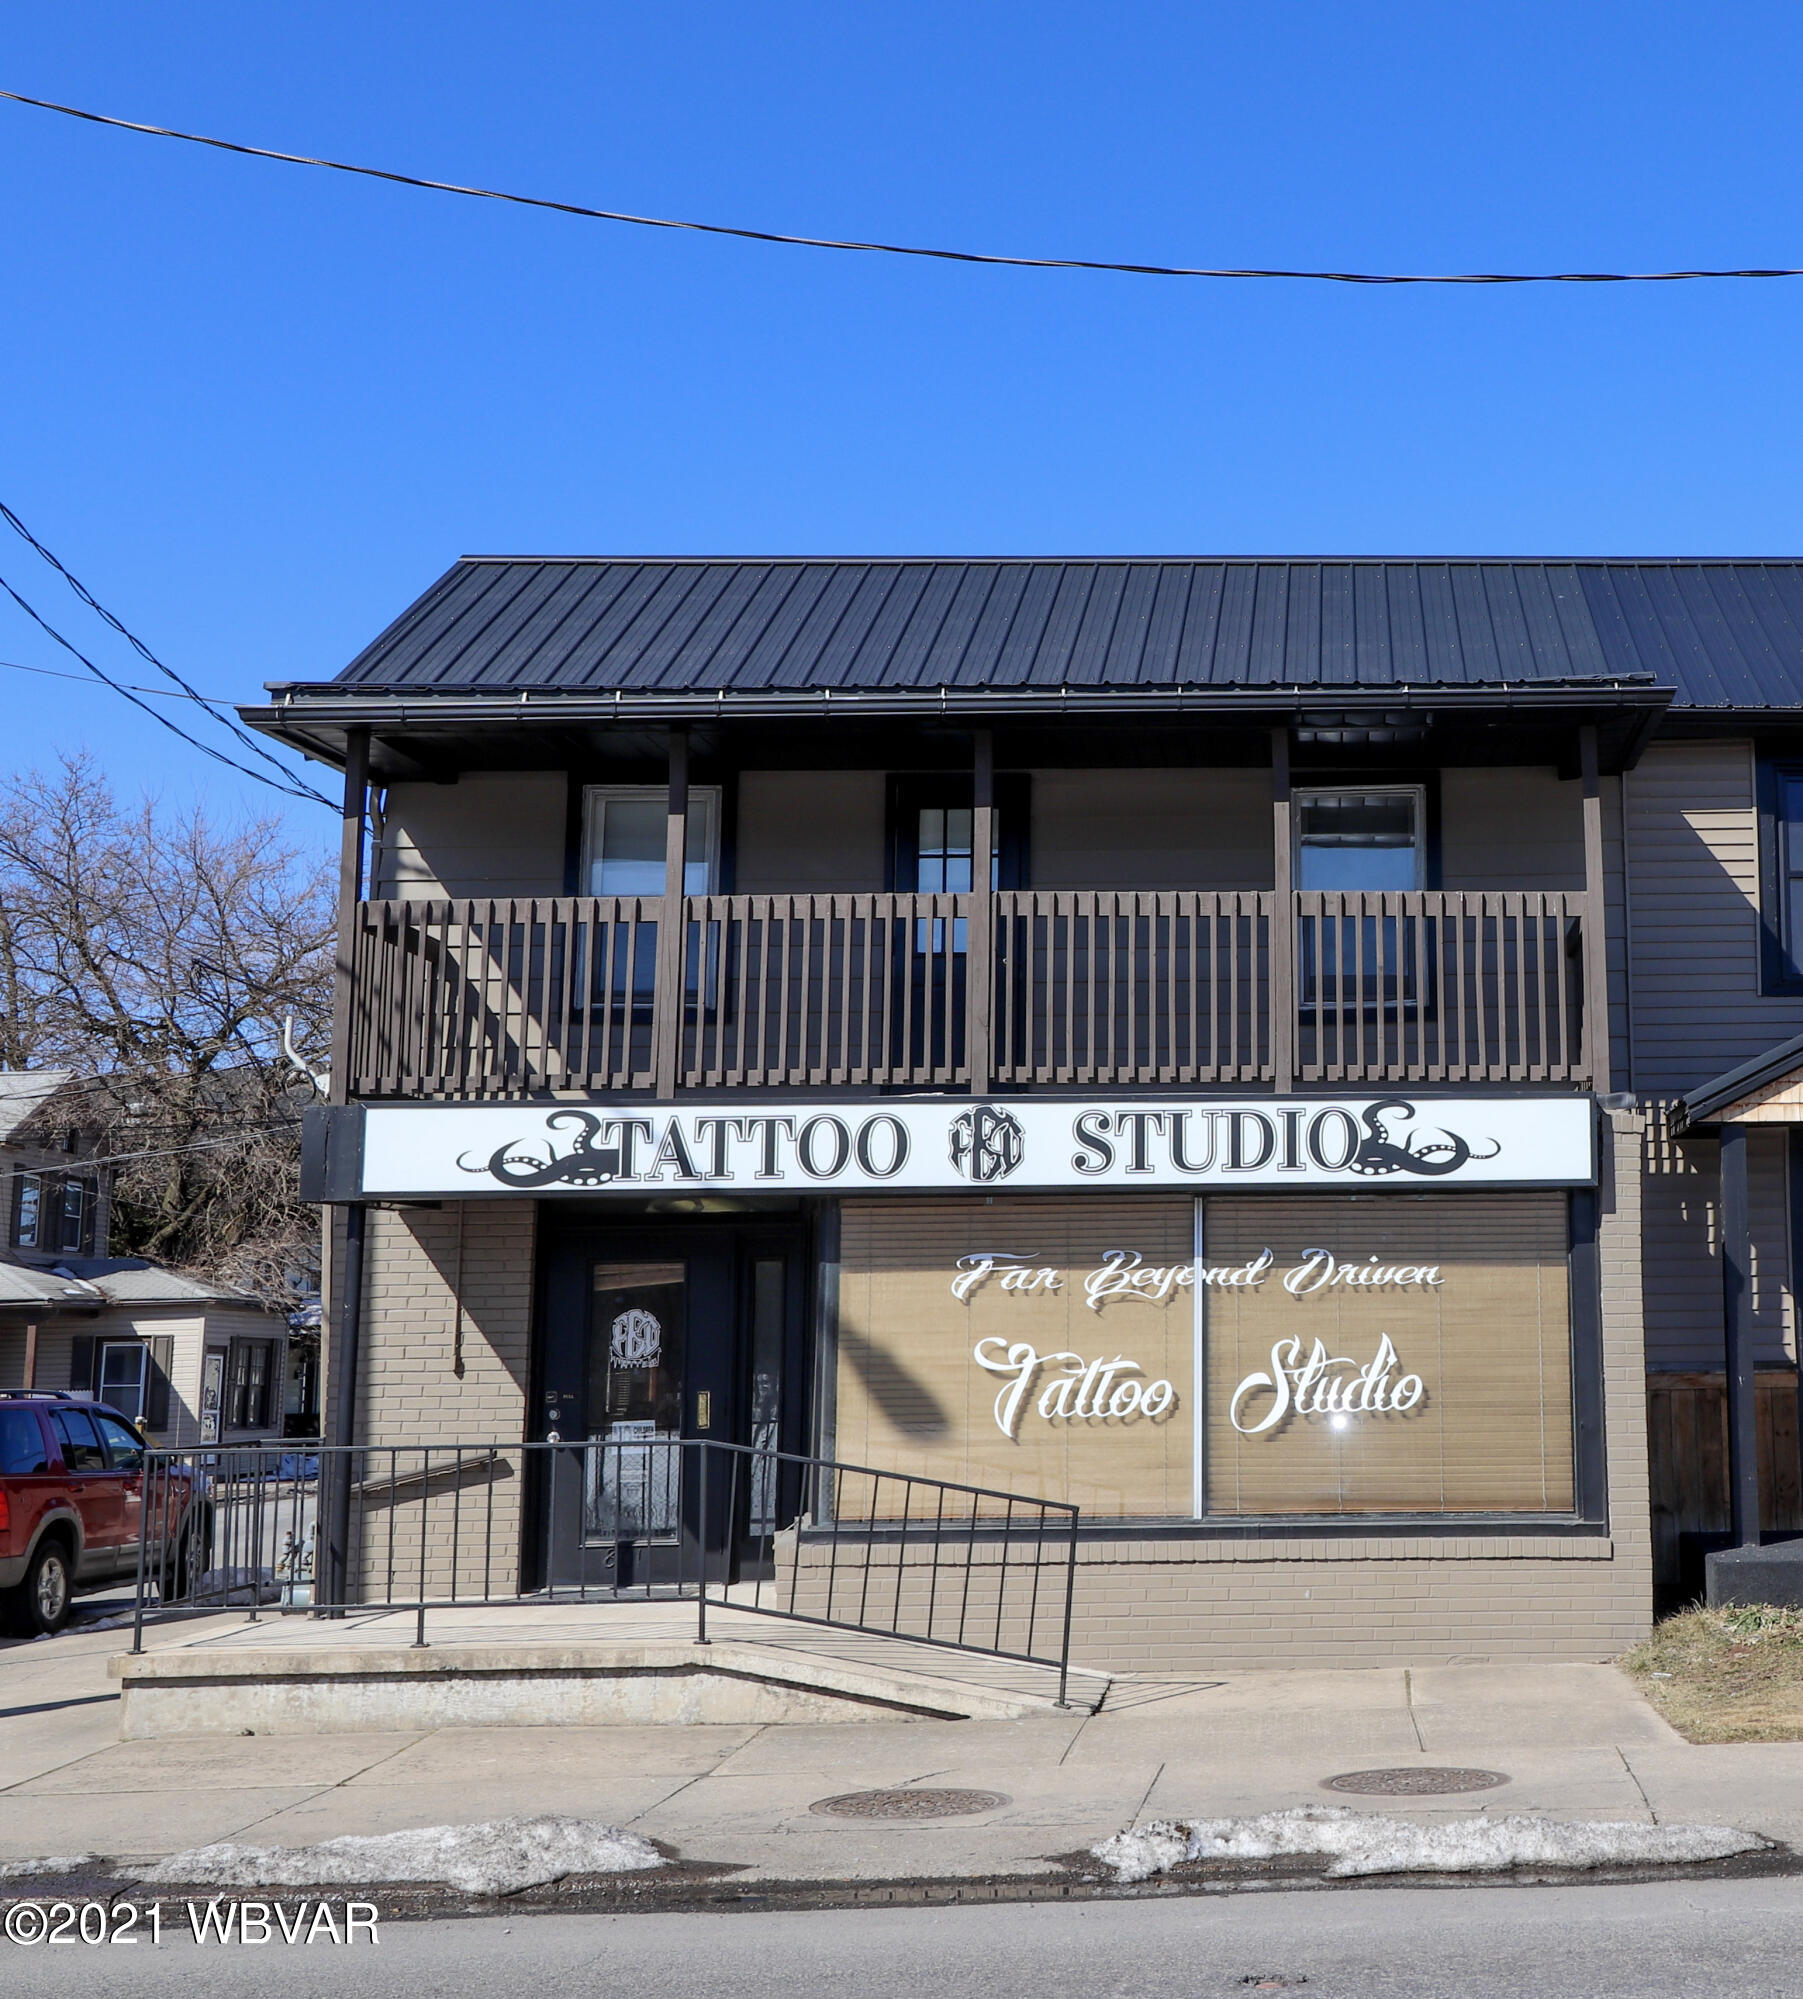 801 3RD STREET, Williamsport, PA 17701, ,1.25 BathroomsBathrooms,Commercial sales,For sale,3RD,WB-91949